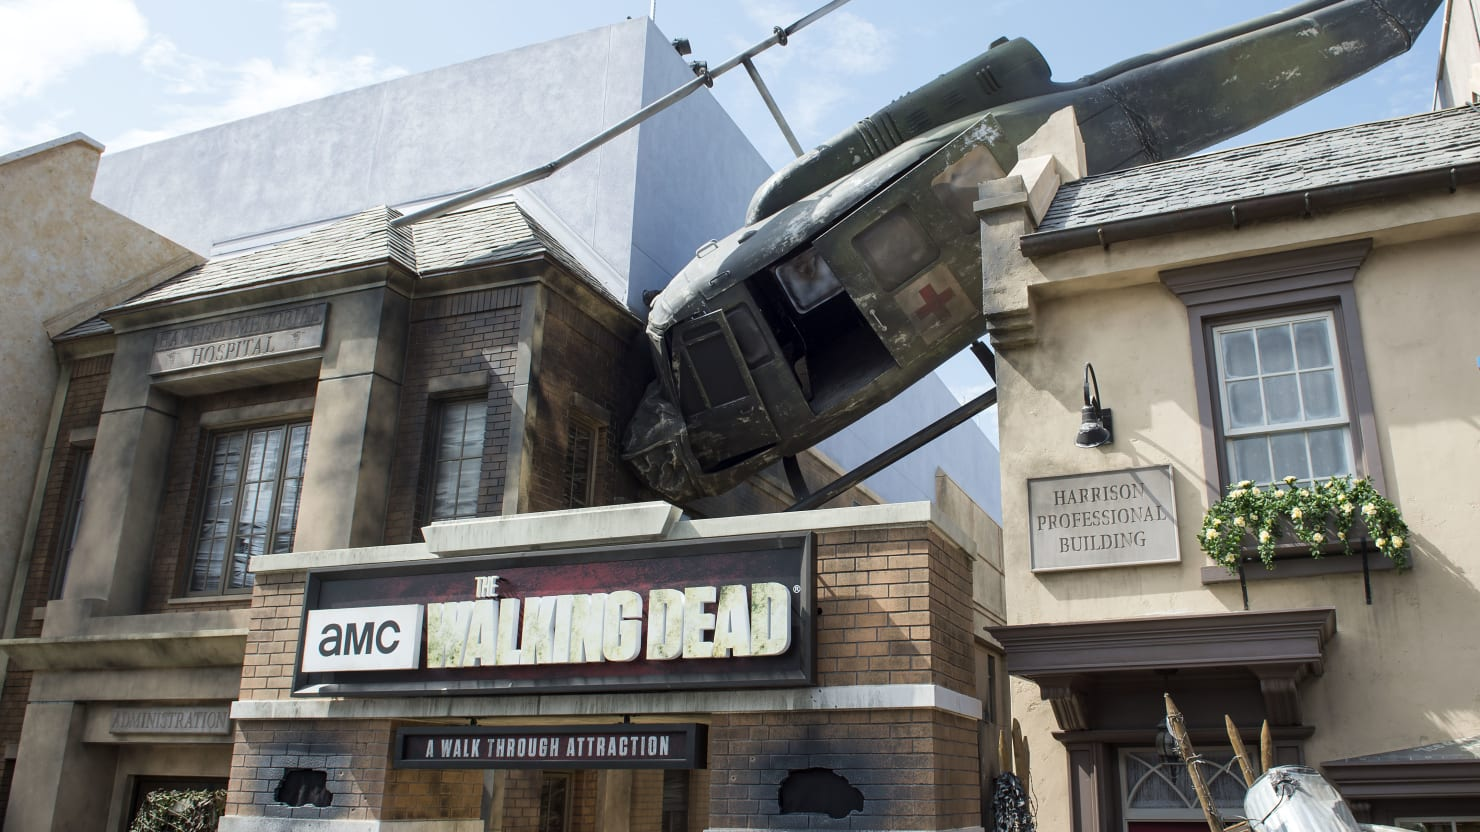 Universal Studios' 'Walking Dead' Actors Were Attacked and Groped by Park Visitors: Lawsuit